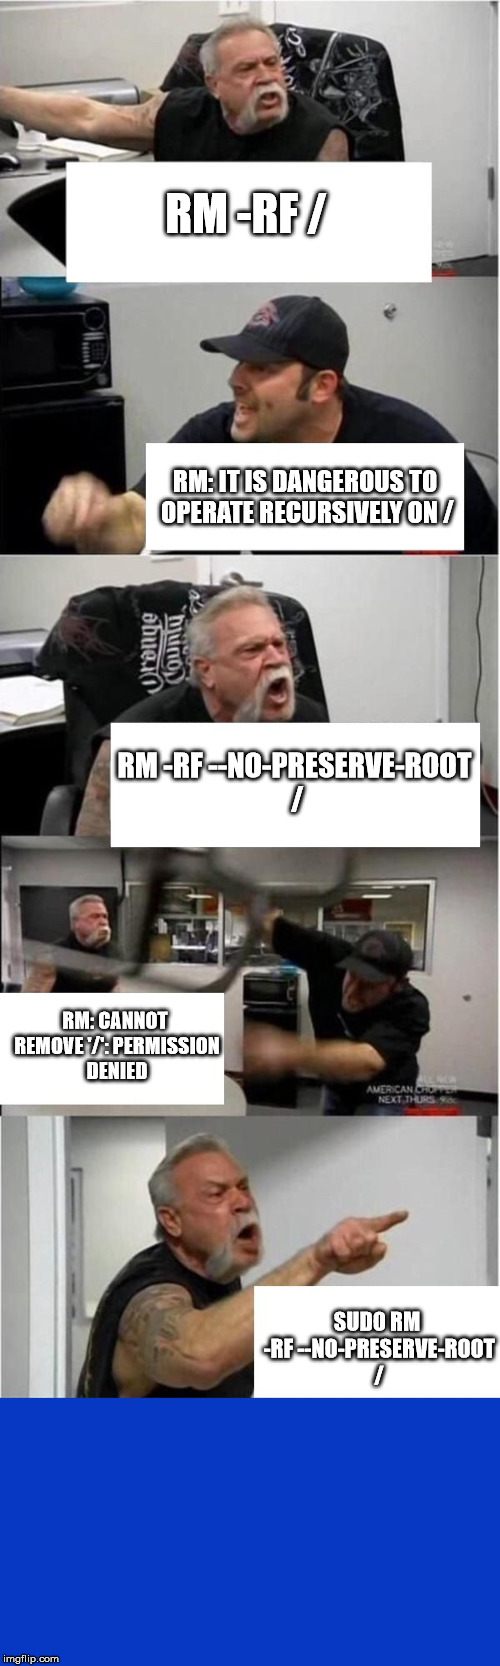 American Chopper gets high-tech | RM -RF / RM: IT IS DANGEROUS TO OPERATE RECURSIVELY ON / RM -RF --NO-PRESERVE-ROOT / RM: CANNOT REMOVE '/': PERMISSION DENIED SUDO RM -RF -- | image tagged in american chopper argument sudo rm rf operate recursively bluescreen | made w/ Imgflip meme maker